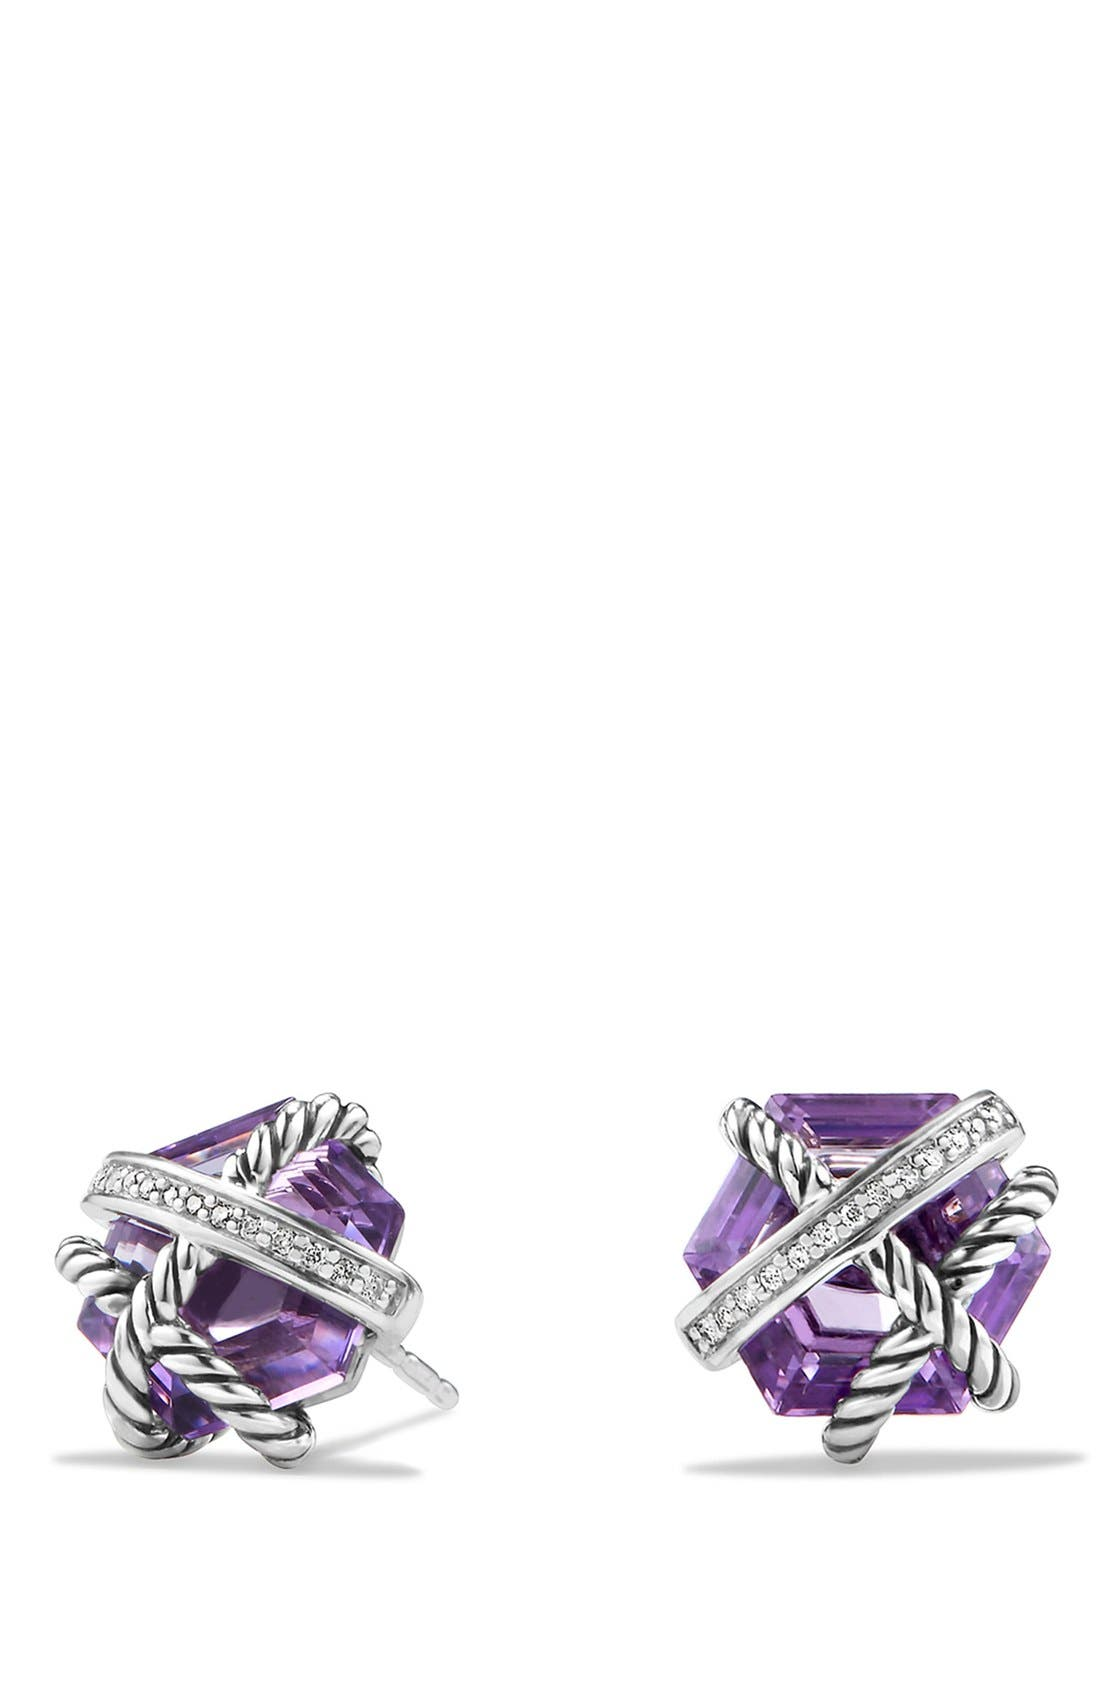 Alternate Image 1 Selected - David Yurman 'Cable Wrap' Earrings with Semiprecious Stones & Diamonds